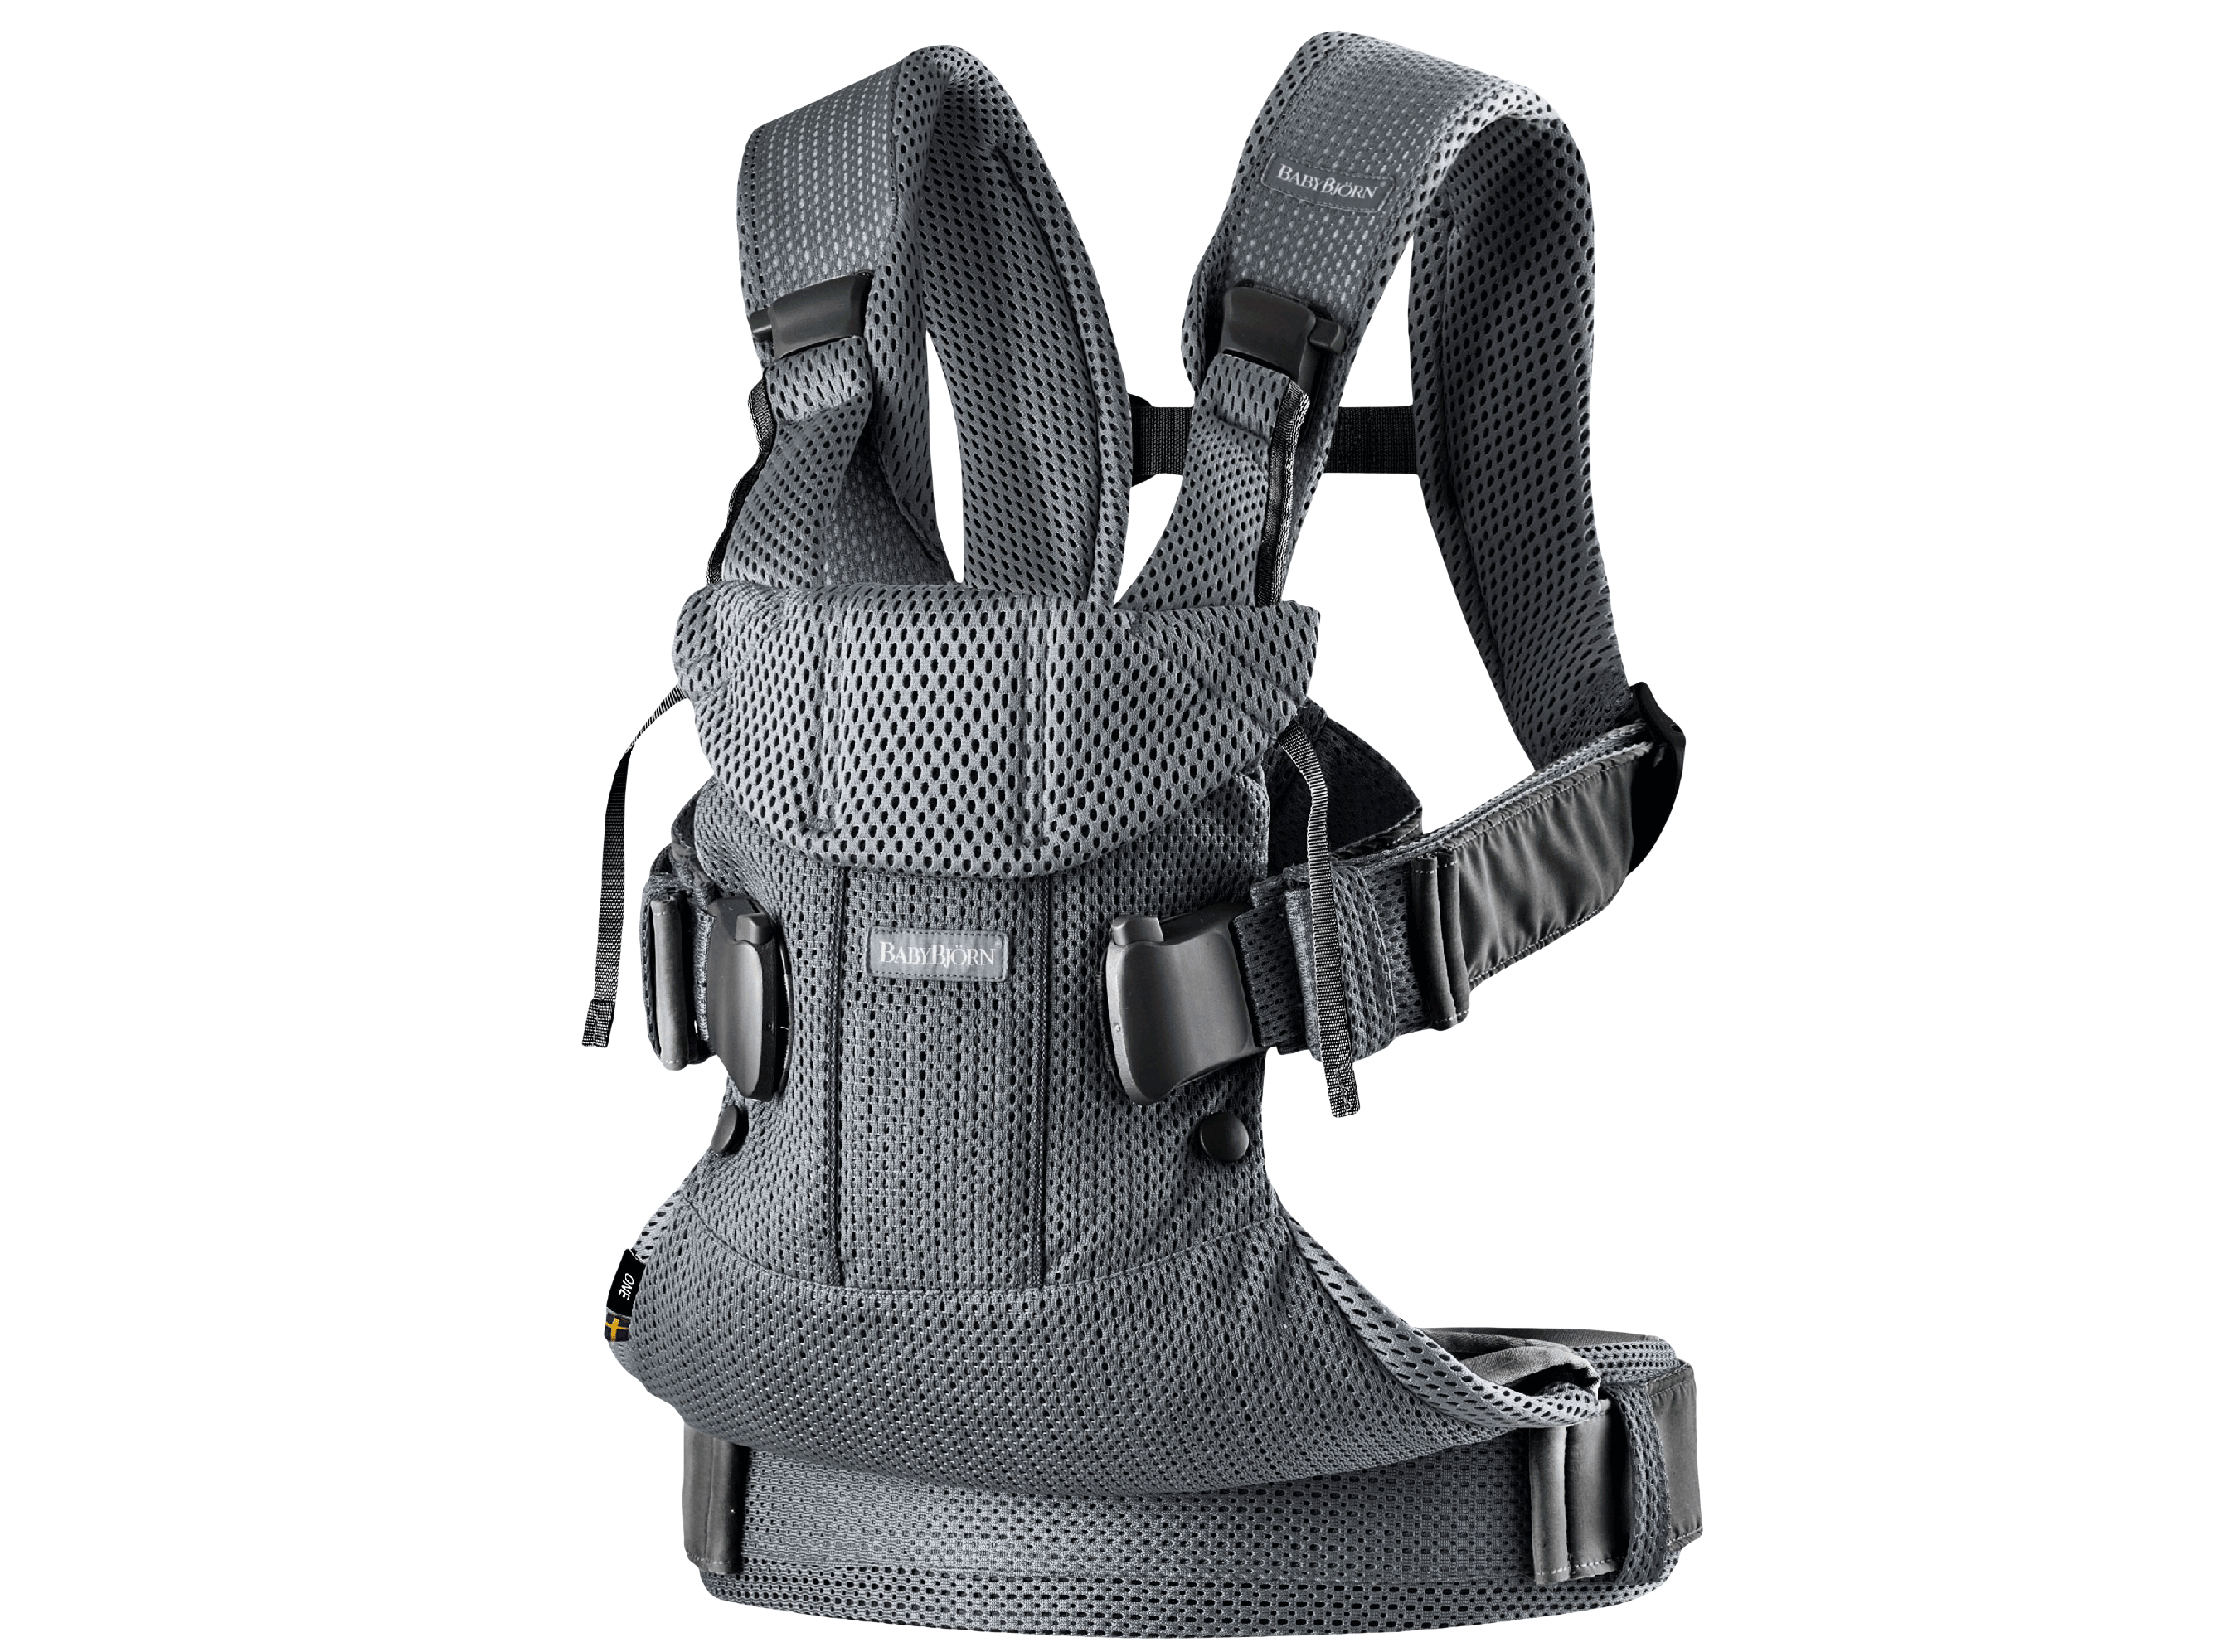 BABYBJÖRN Baby Carrier One Air - Anthracite, Mesh.